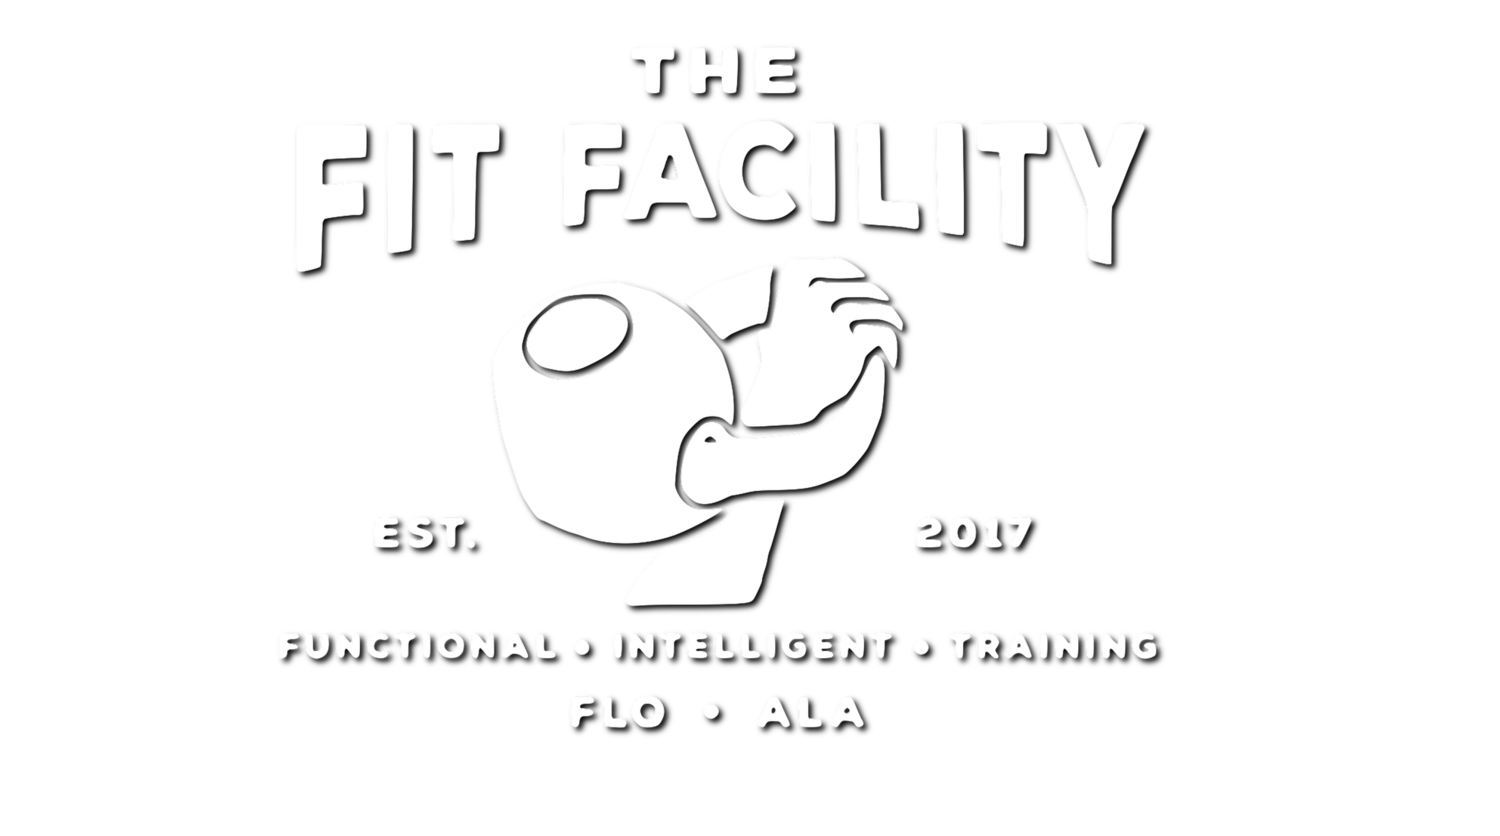 The Fit Facility